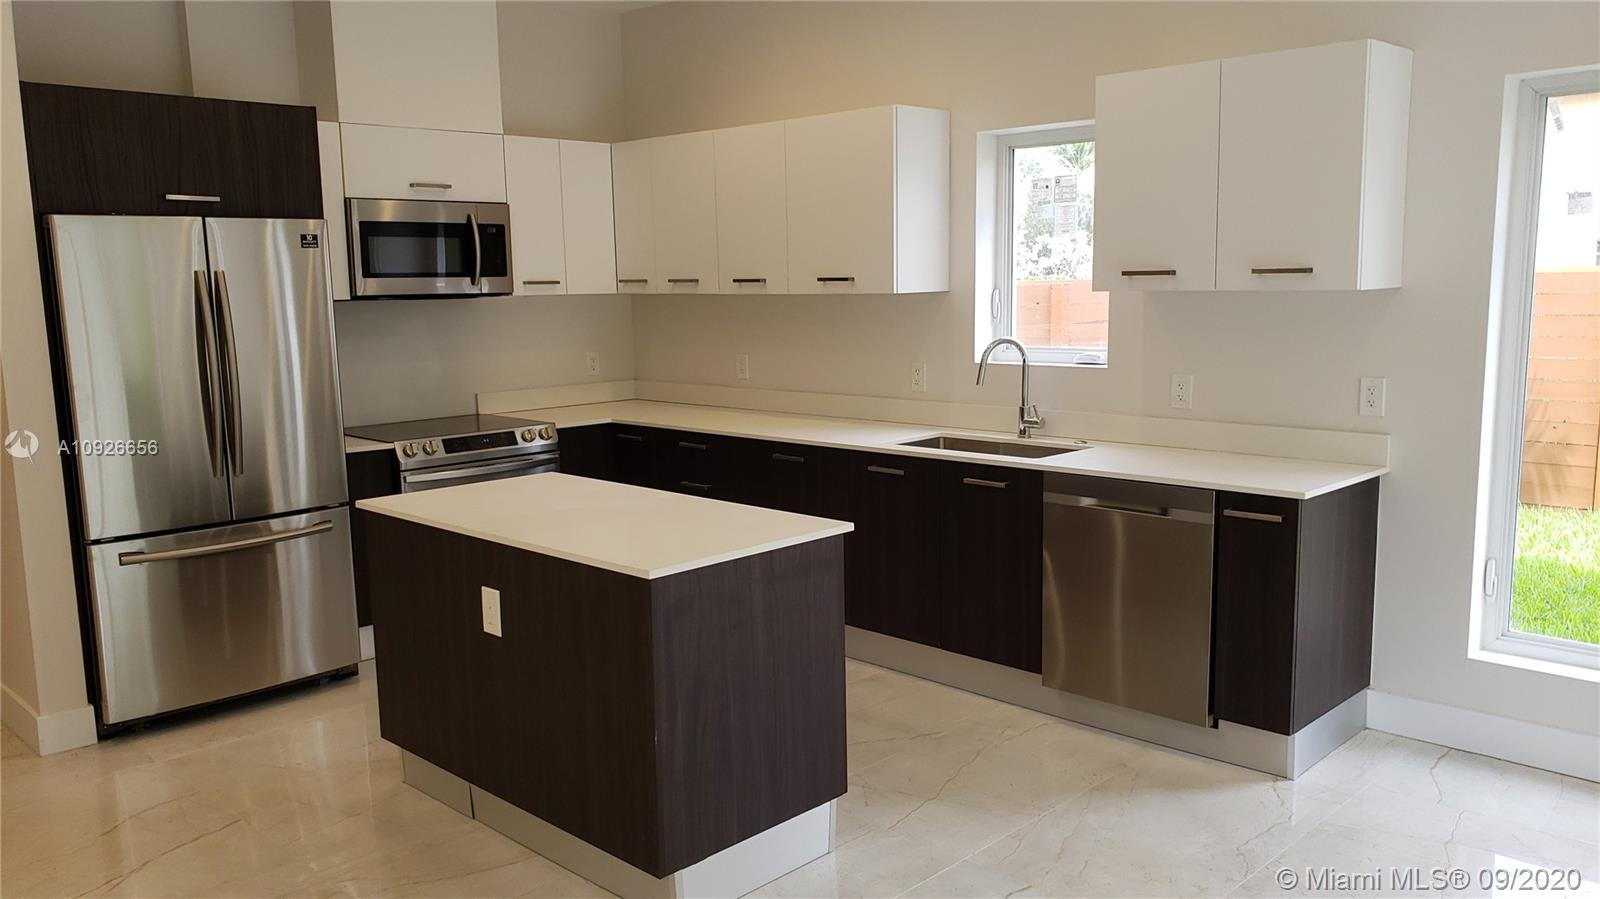 Looking for a brand new contemporary townhouse at an affordable price in a prime Oakland Park location? Check out 43 East, an exciting new enclave of 8 contemporary town homes. 43 East is on a quiet side street but close to outdoor parks, tennis courts, G21 Fitness, Funky Buddha Brewery & The Oakland Park Culinary District. You will be impressed with the clean urban design, coastal-inspired finishes and thoughtfully designed floor plan. Each model is a corner unit & features 10 ft ceilings, modern glass banisters, impact windows, full laundry room with oversized washer & dryer, 2-car garage & private fenced yards. The kitchen boasts European cabinets, stainless steel upgraded appliances & a center island. Master w/his & her walk in closets, dble sinks & frameless shower. Don't miss it!